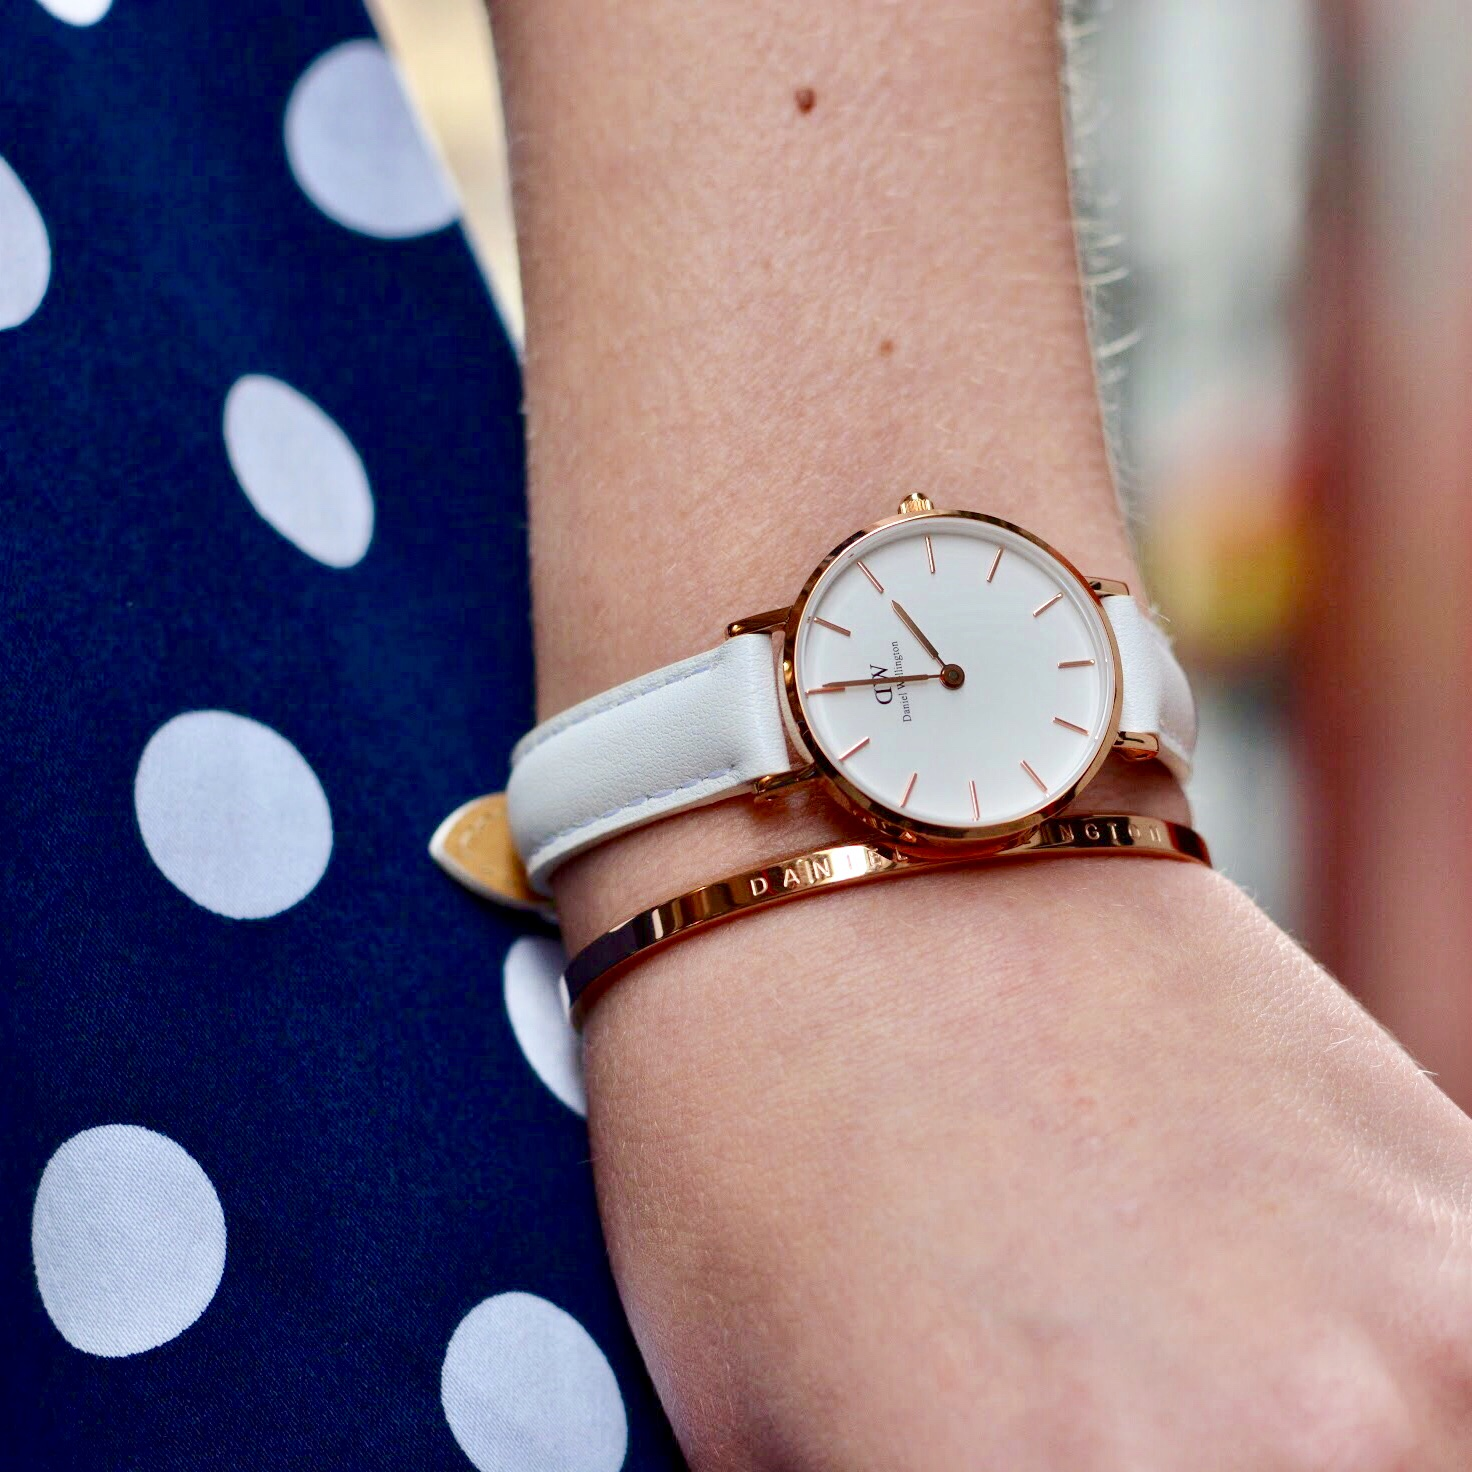 Confirm that you are buying what you want, and that it fulfills any requirements to qualify for the daniel wellington promotion code you want to use.